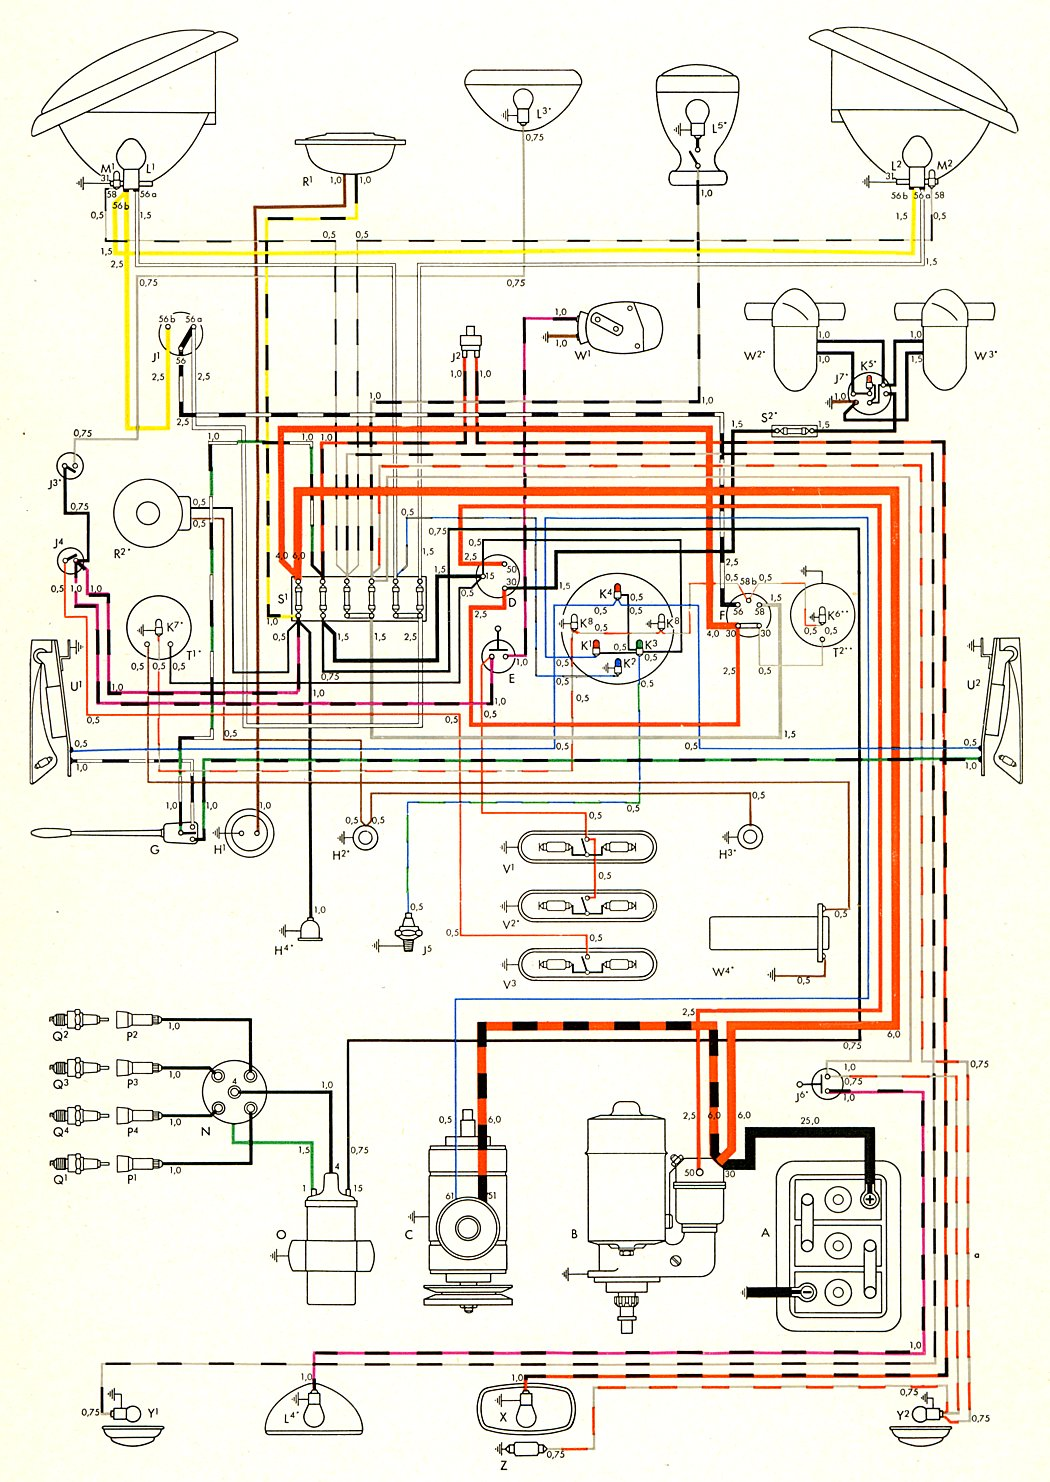 bus_nov57 1957 bus wiring diagram thegoldenbug com 1971 vw bus wiring diagram at mr168.co